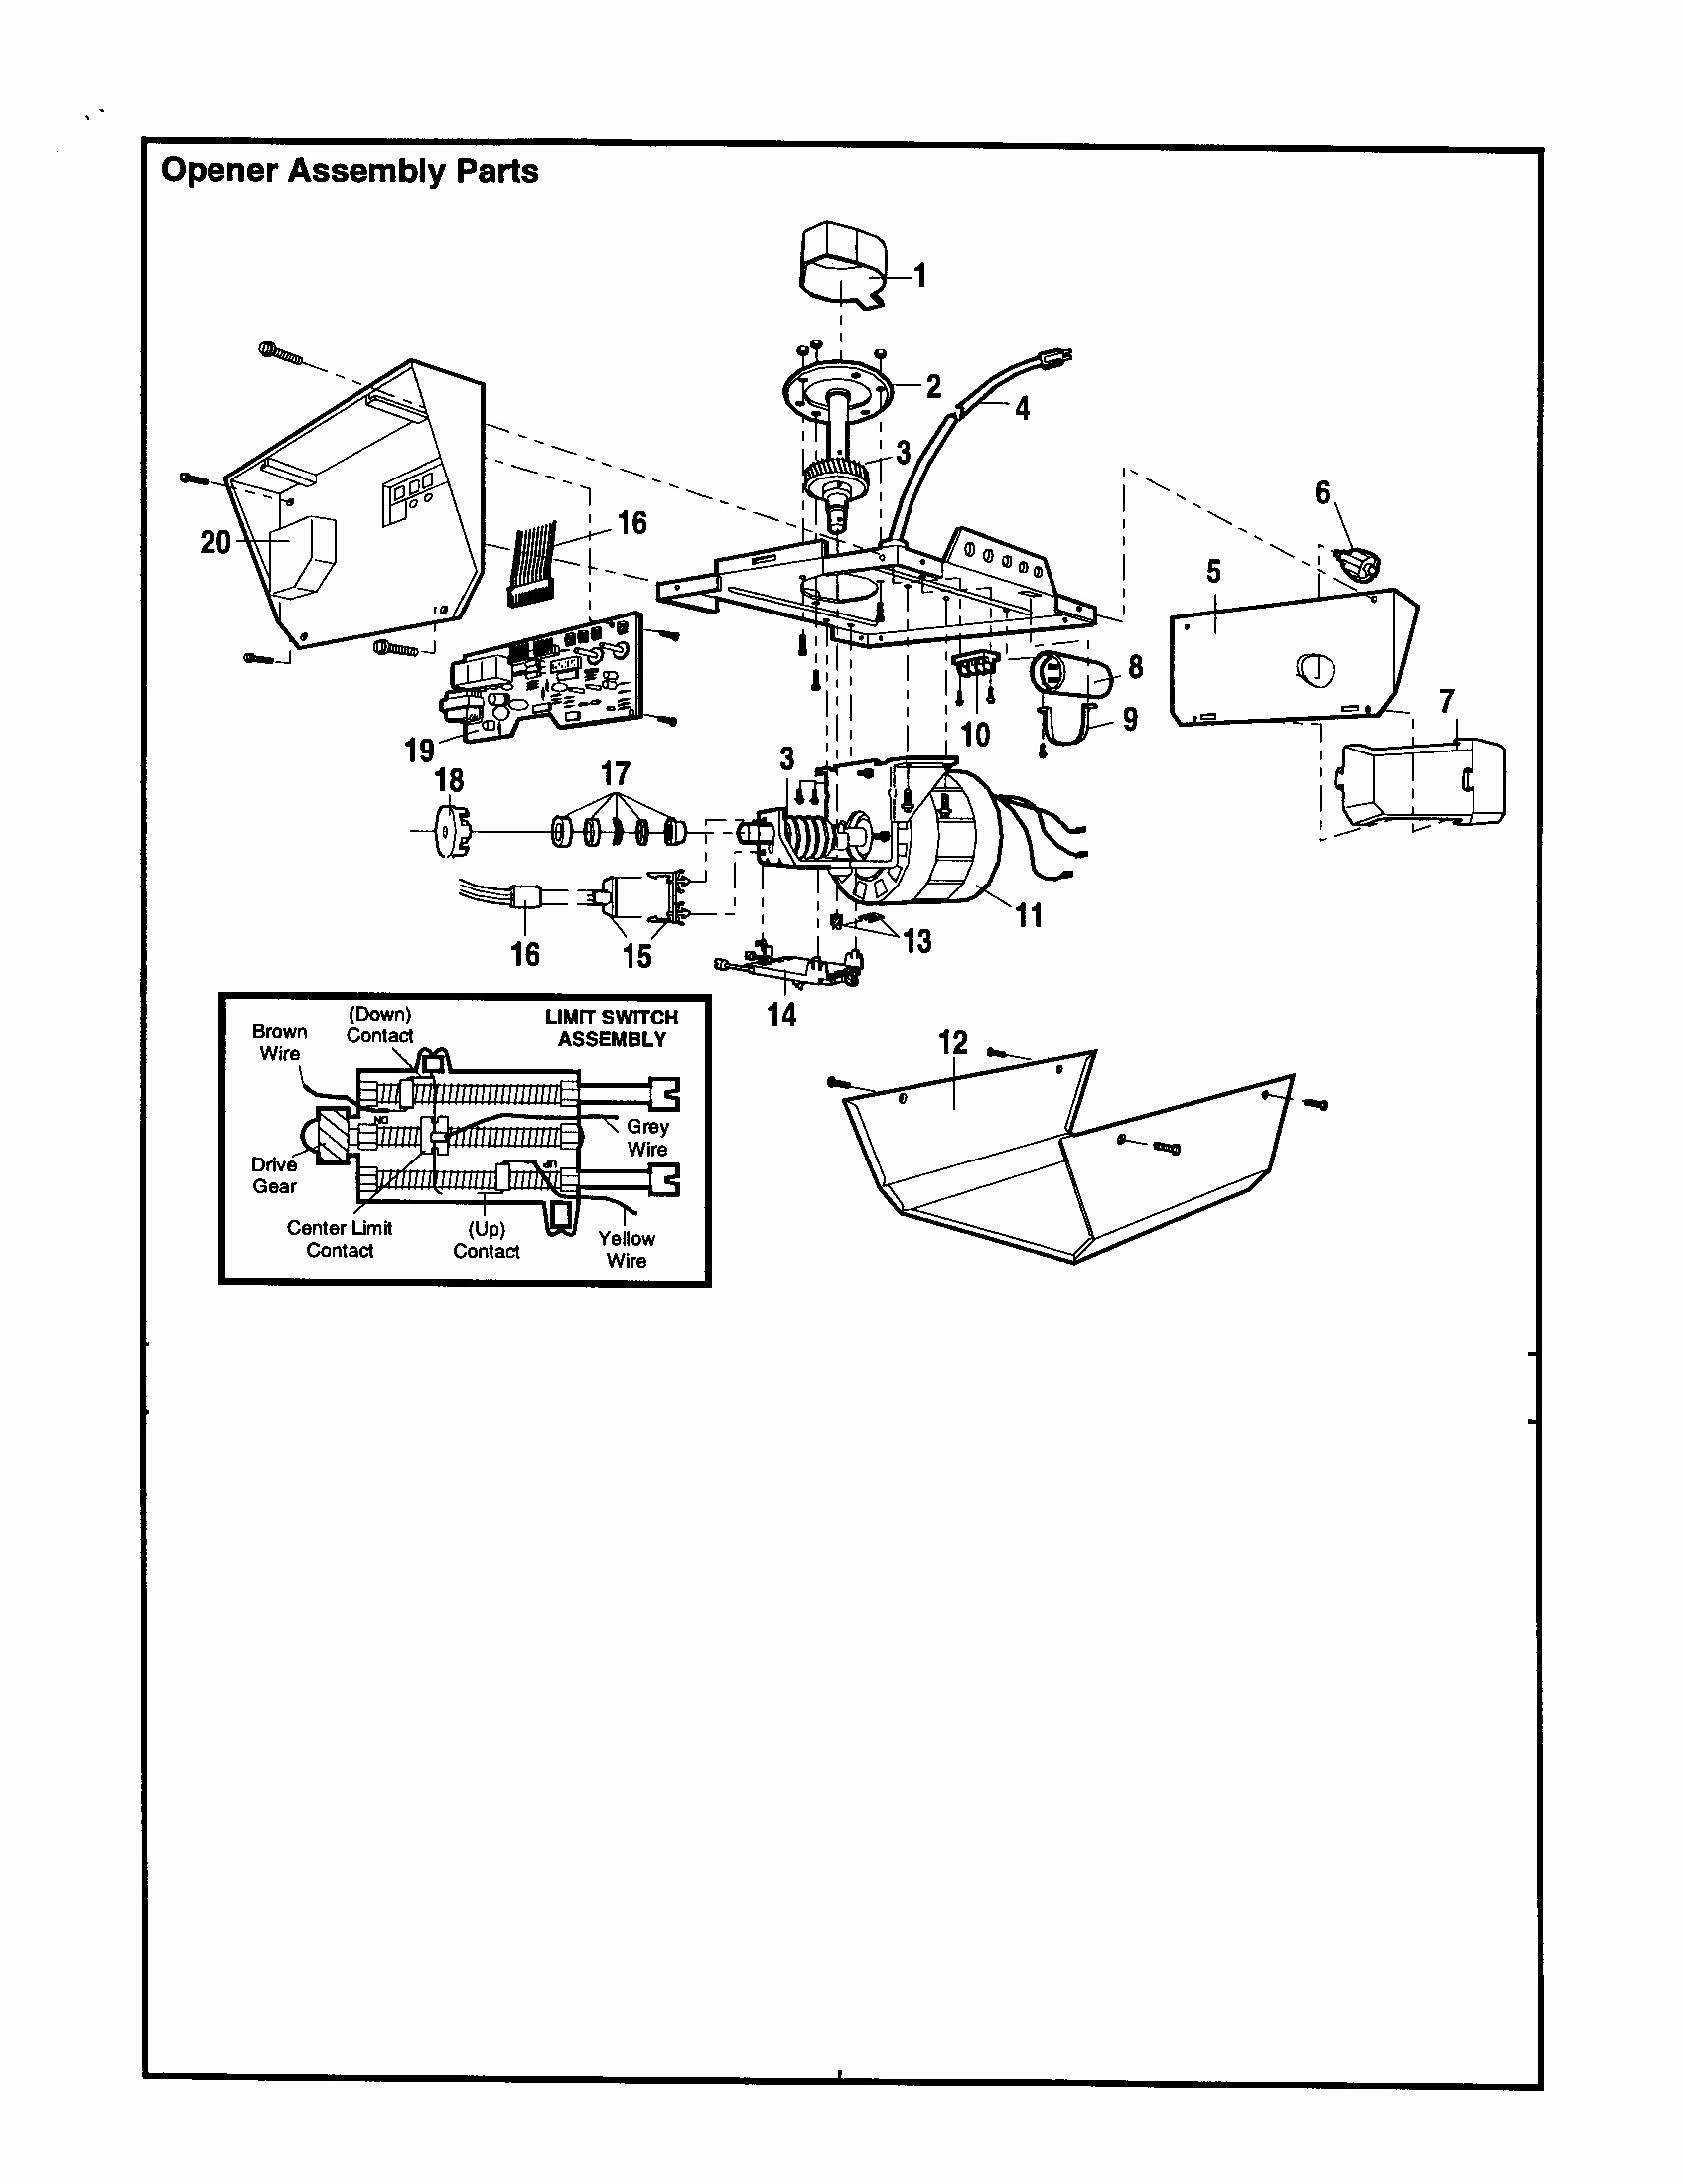 Genie Garage Door Opener Parts Diagram Inspirational 48 Genie Garage - Genie Garage Door Opener Wiring Diagram